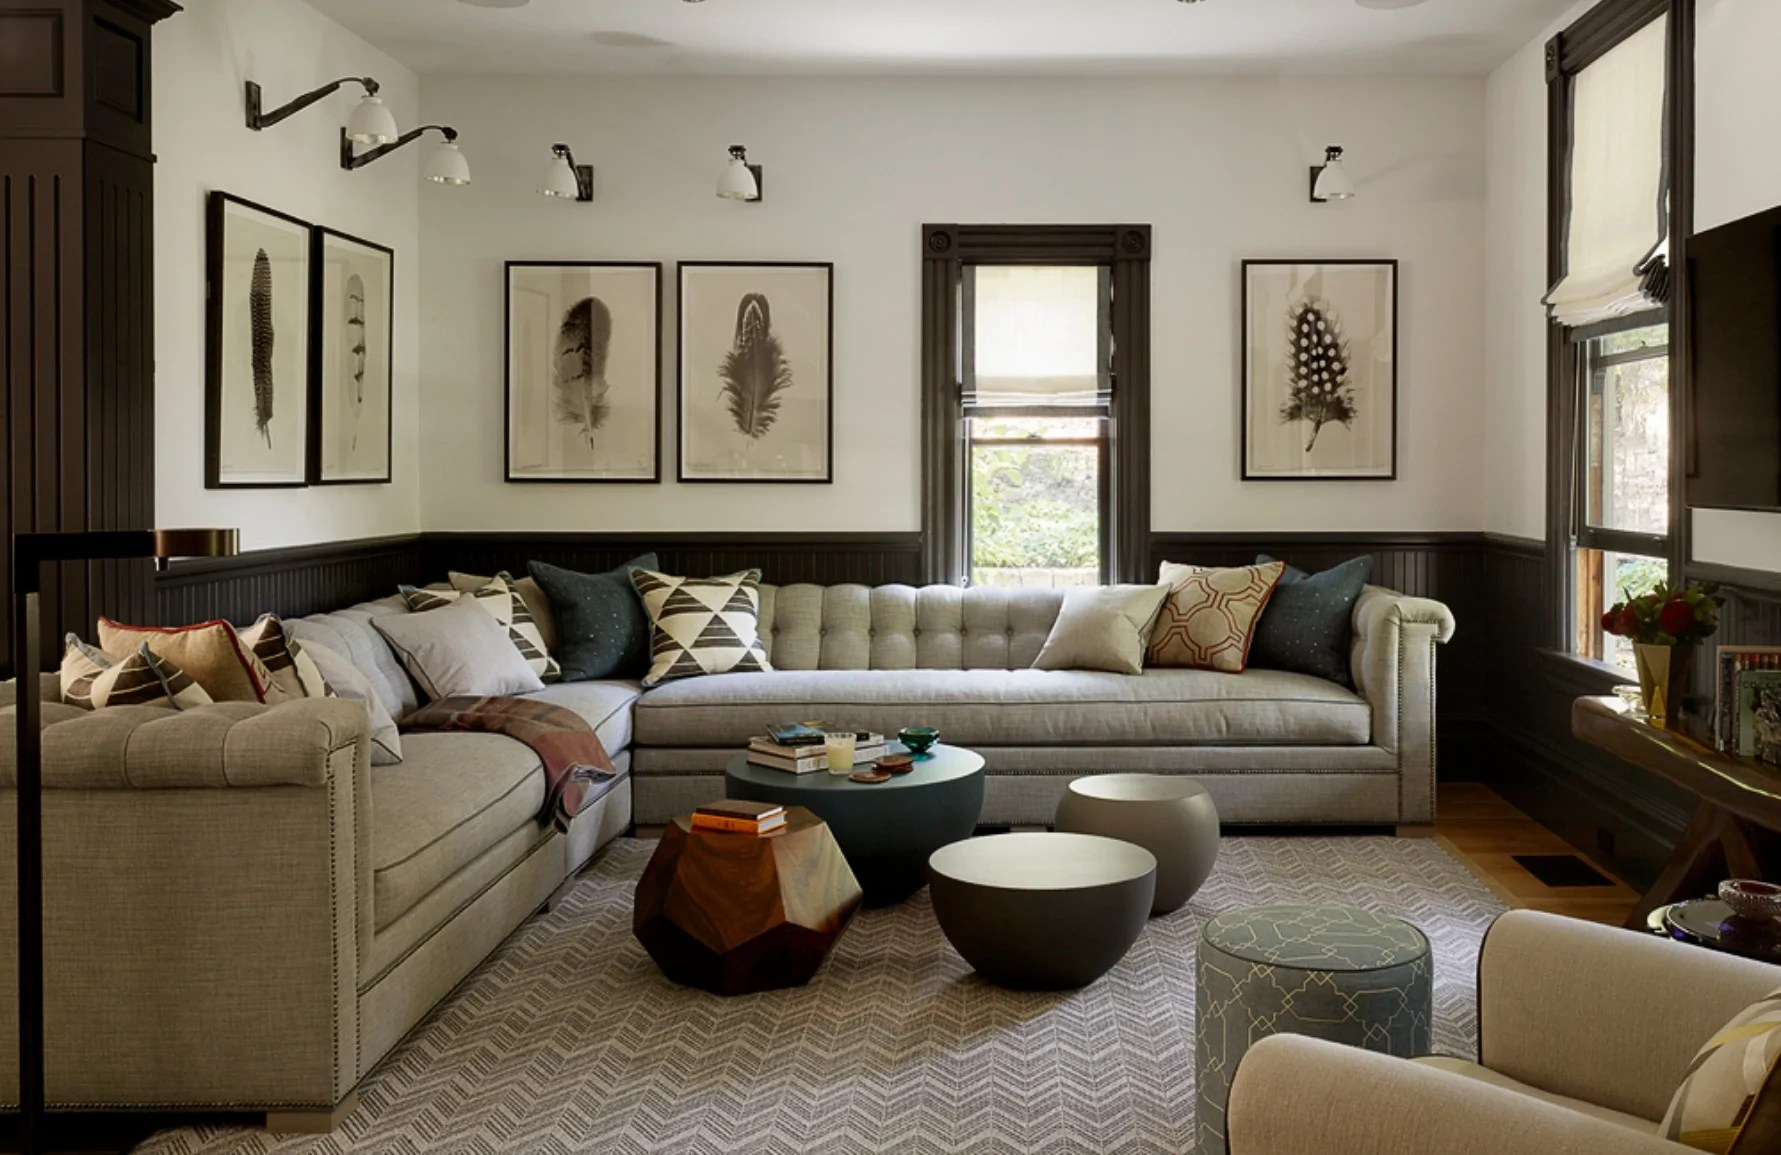 12 Small Living Room Layout Design Ideas Luxdeco Com